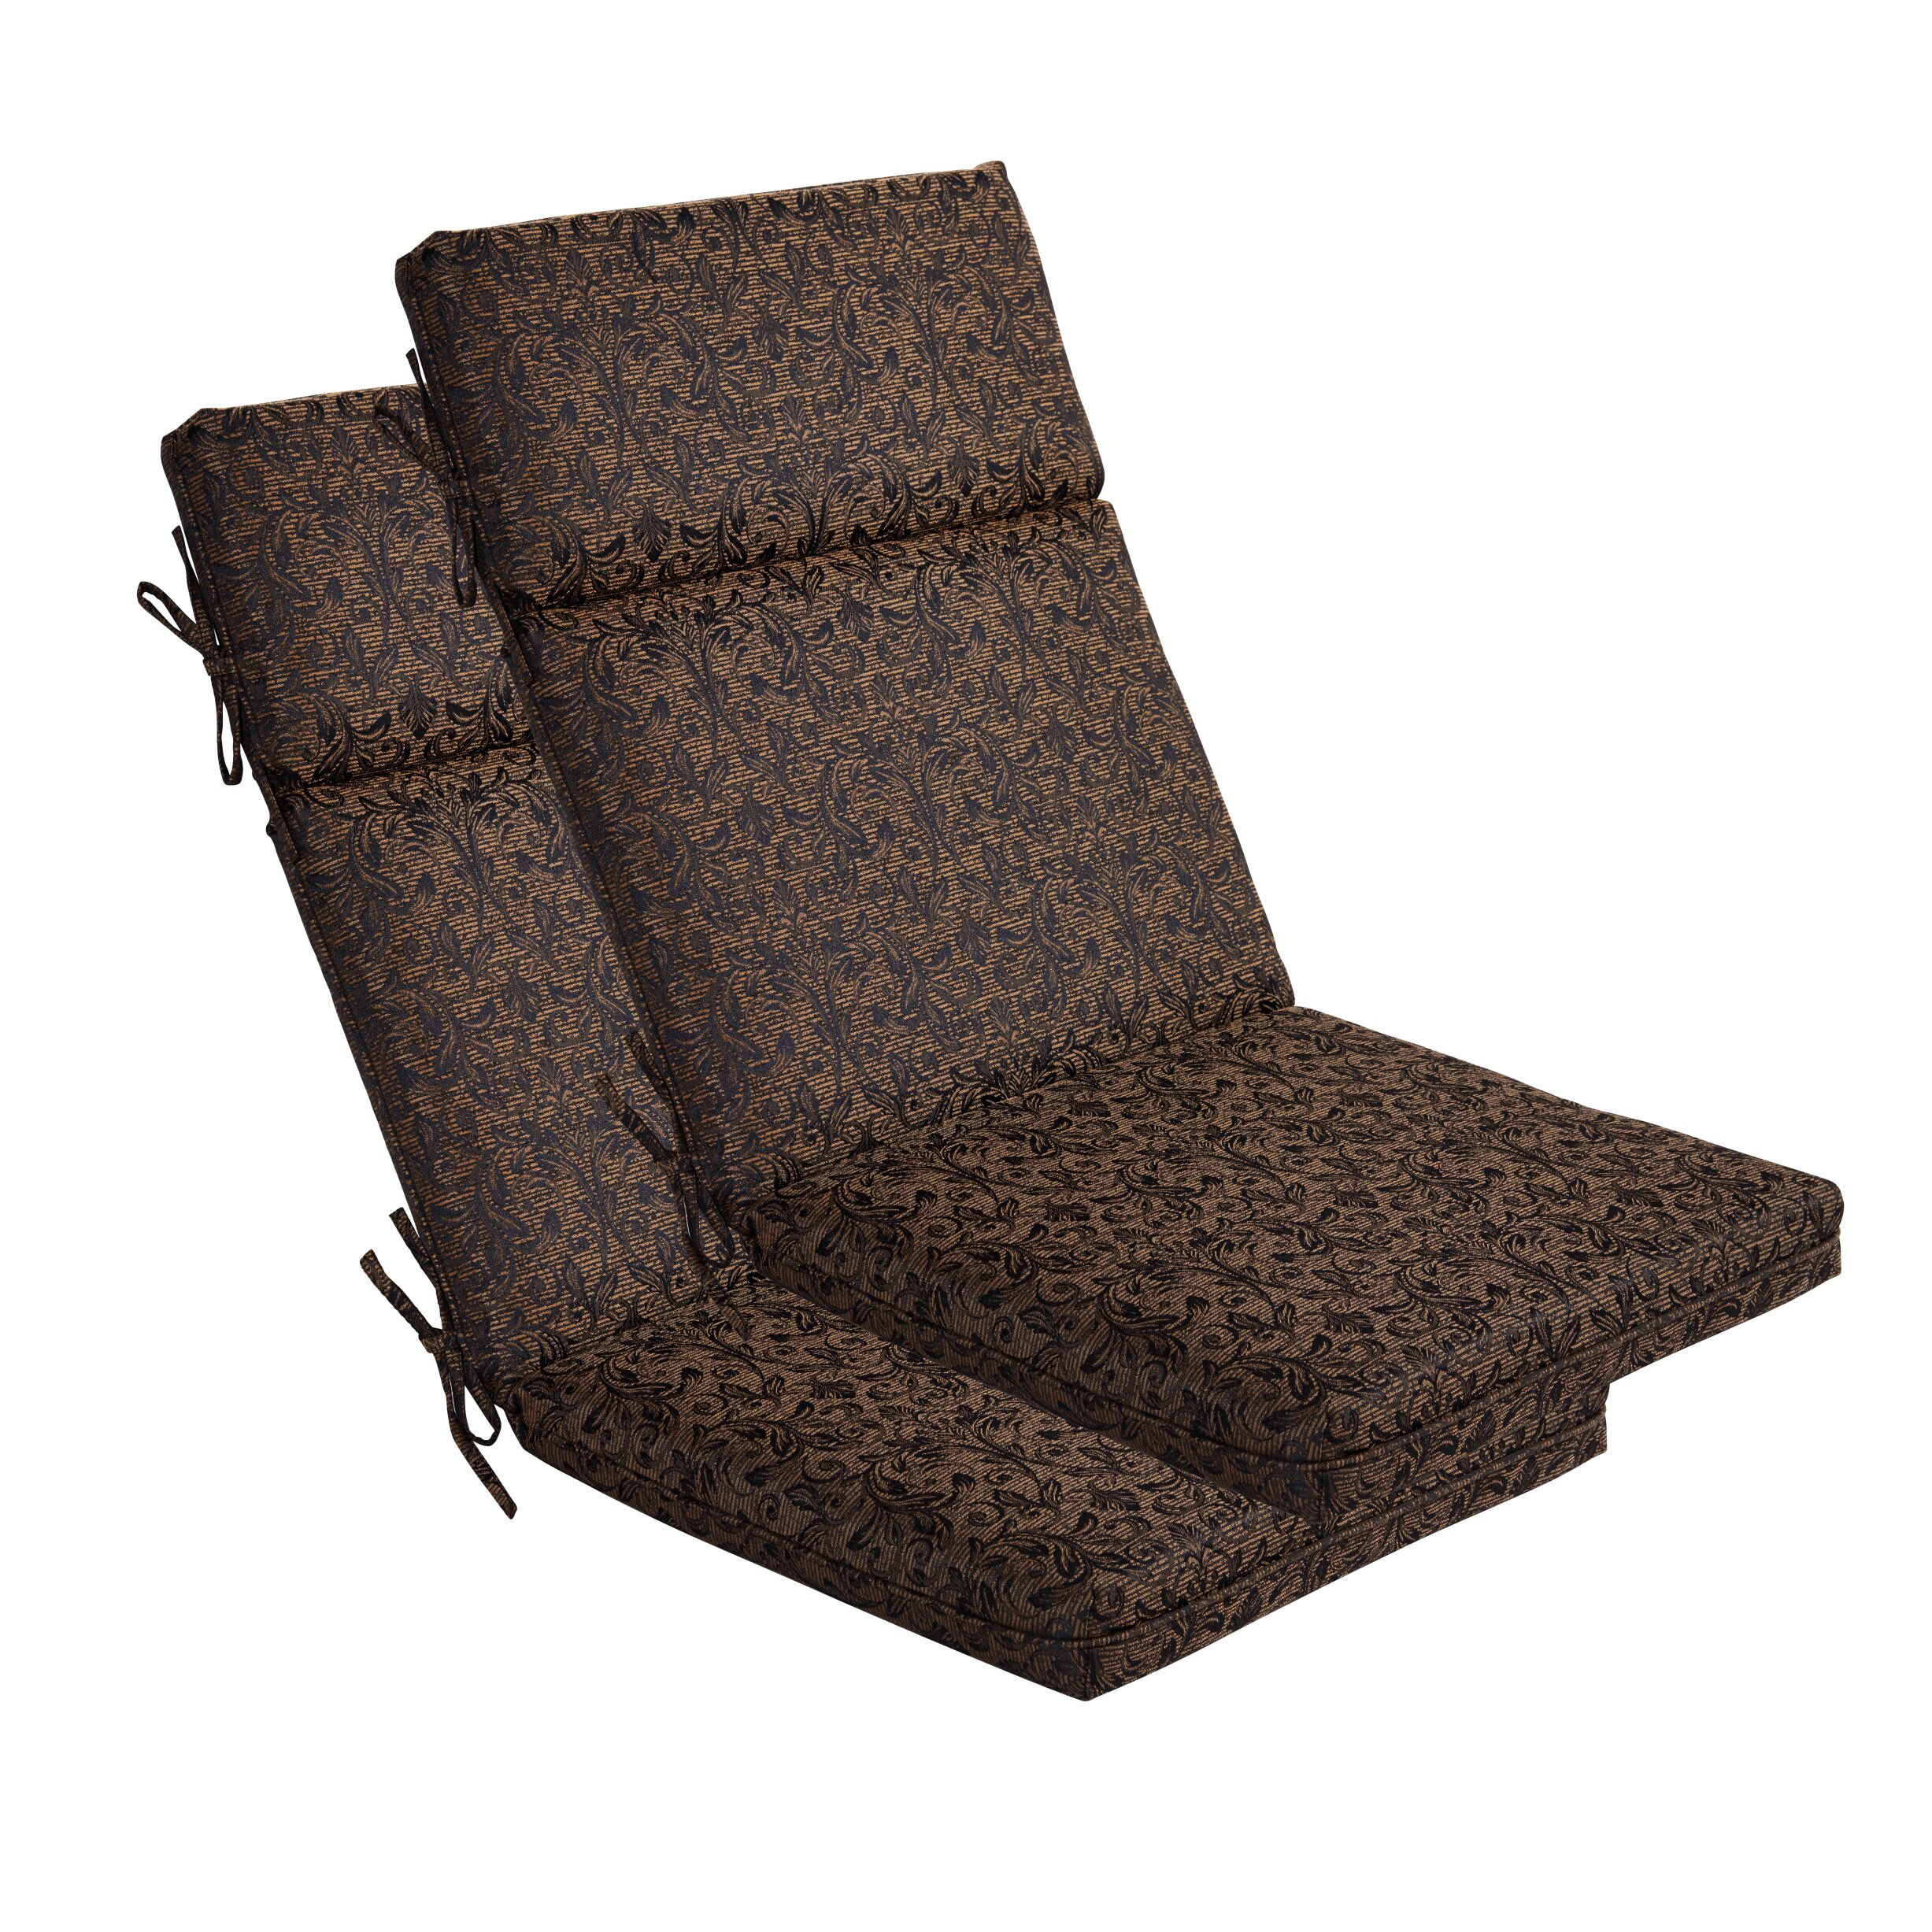 bossima outdoor lounge chair cushion reviews wayfair